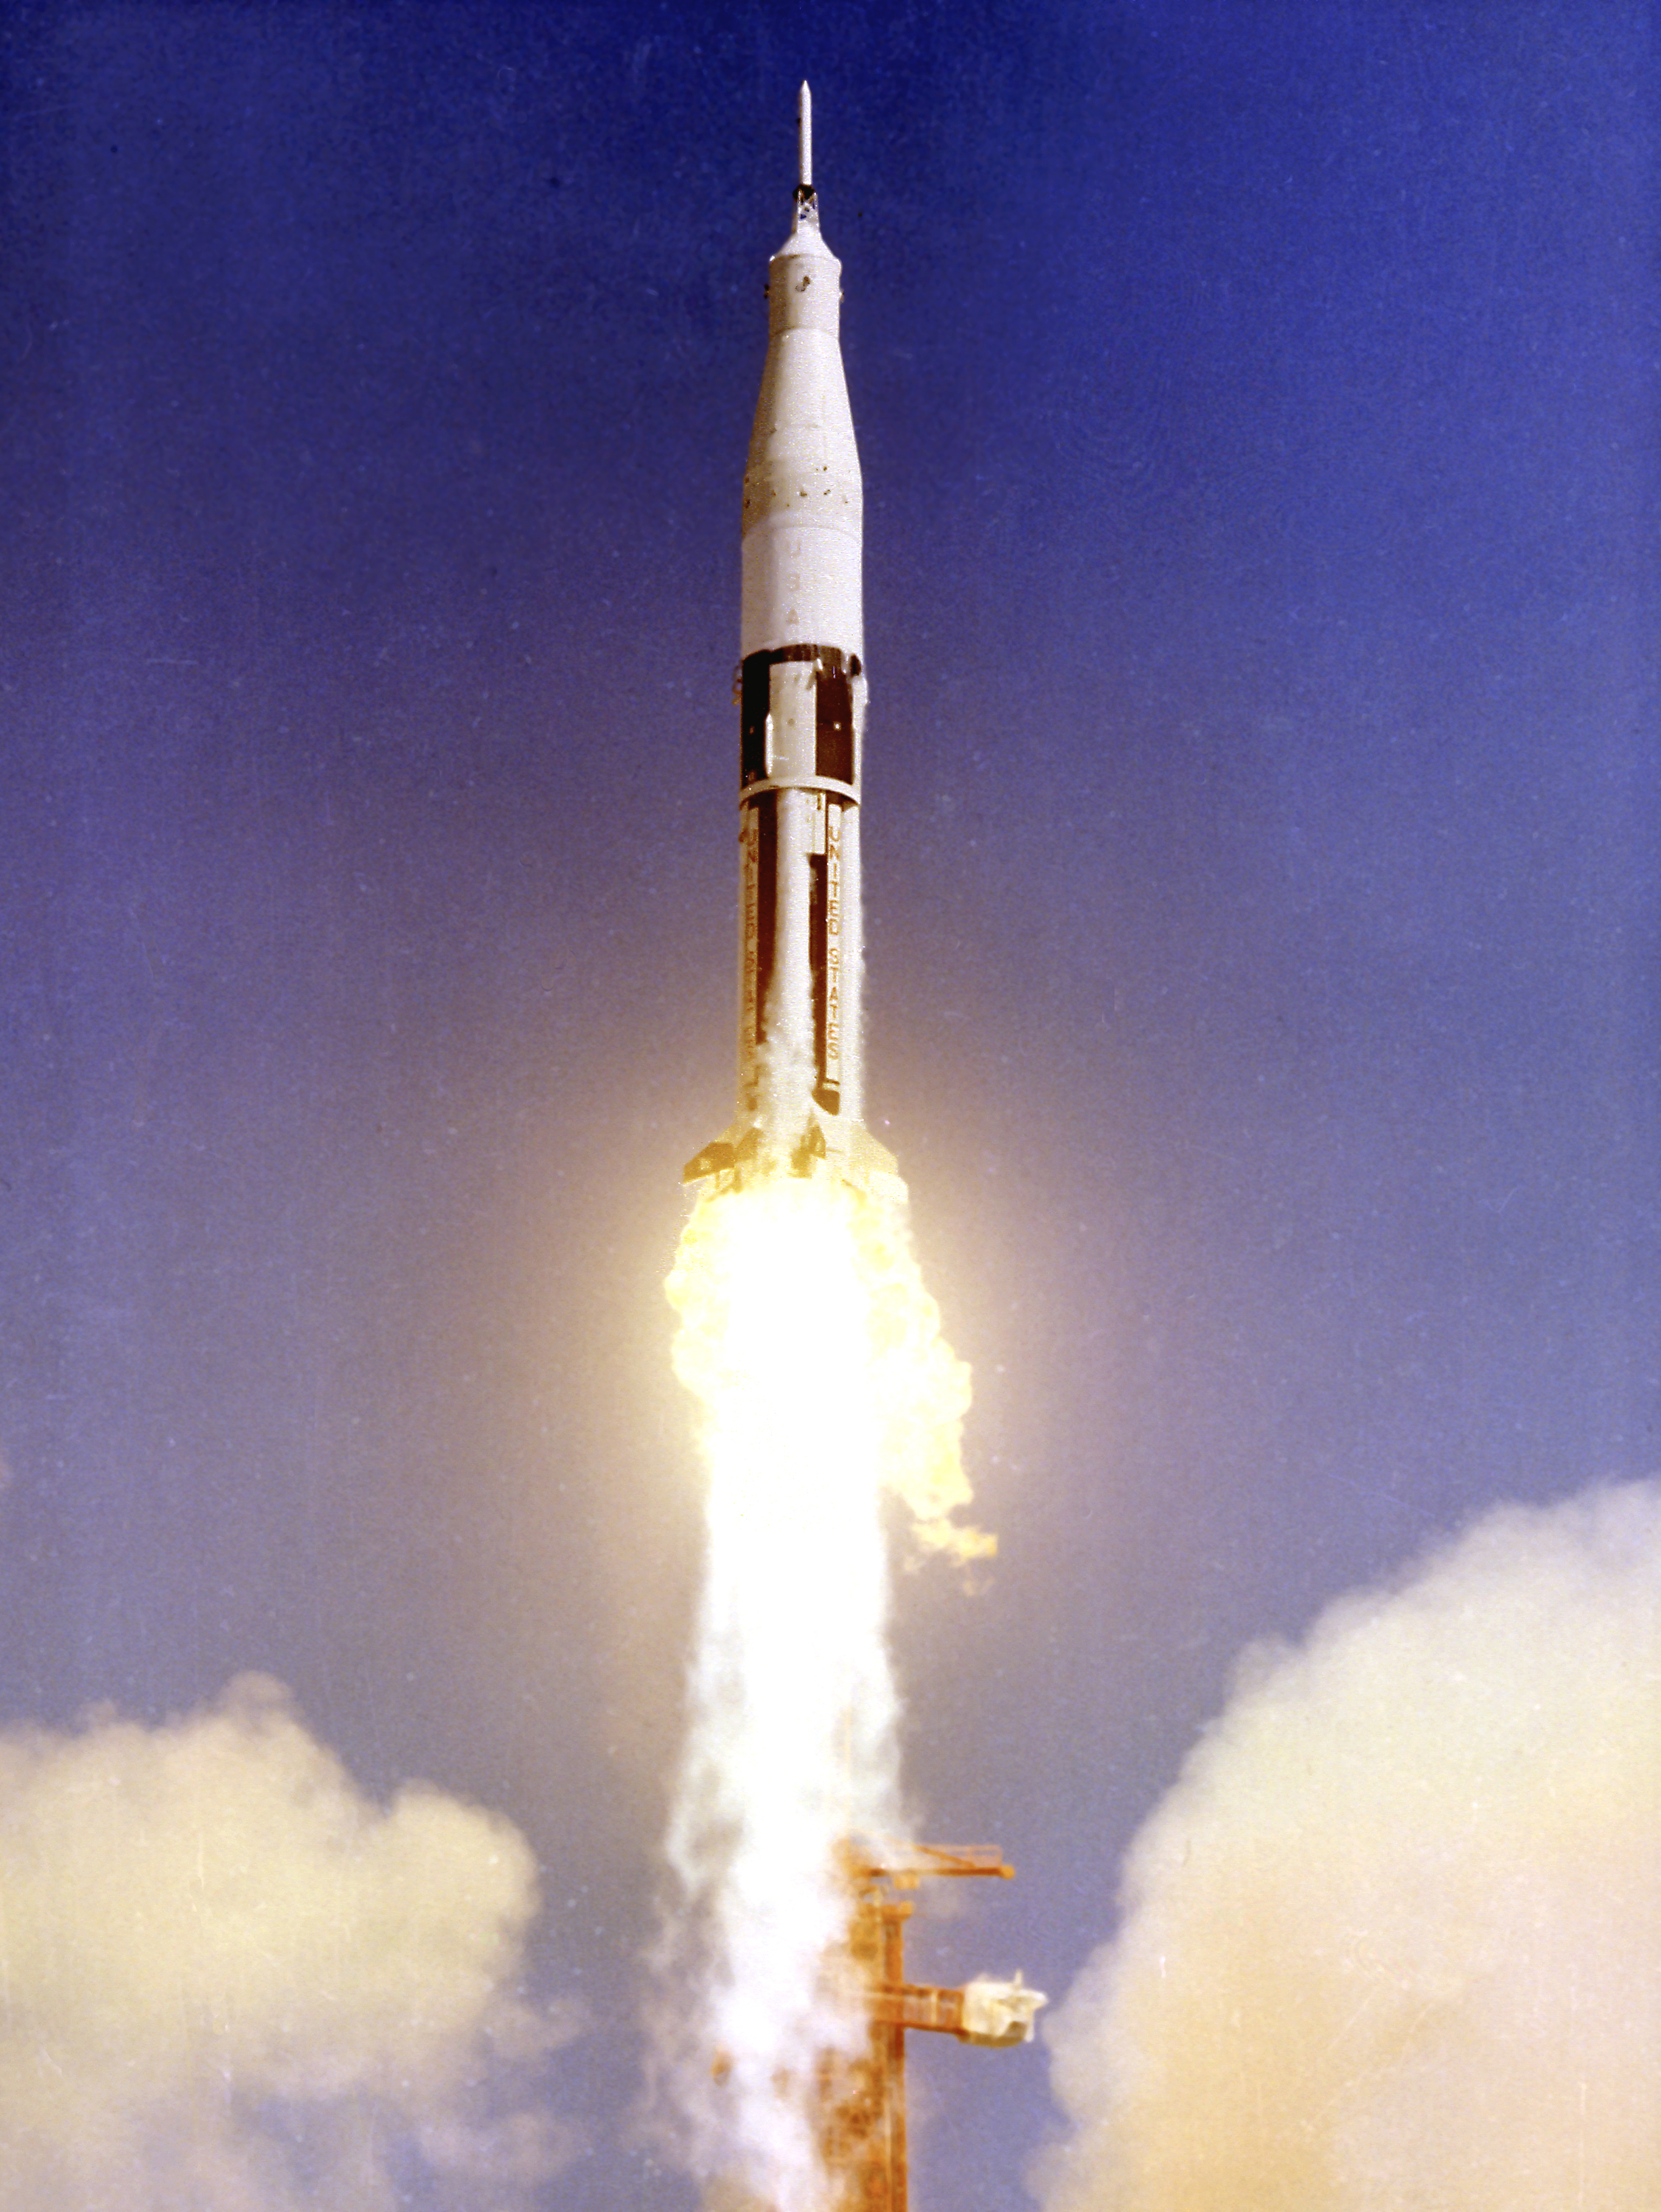 apollo-saturn 201, first of the s-IB series lifted off pad 34 at 11:12 am, feburary 26, 1966, cape REF: 36749 (MIX FILE)